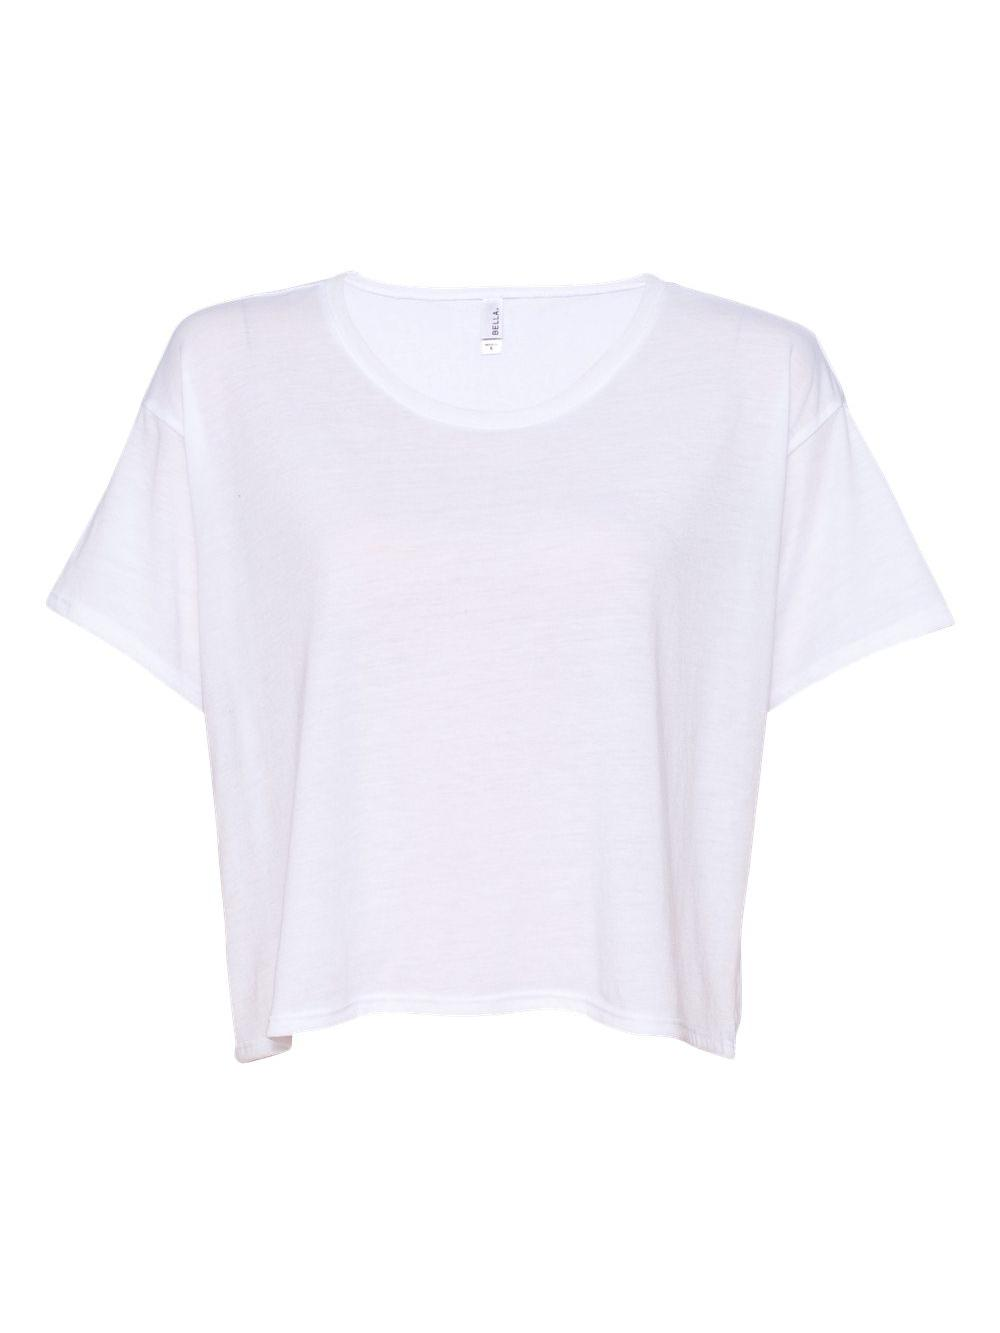 Bella-Canvas-Women-039-s-Flowy-Boxy-Tee-8881 thumbnail 12